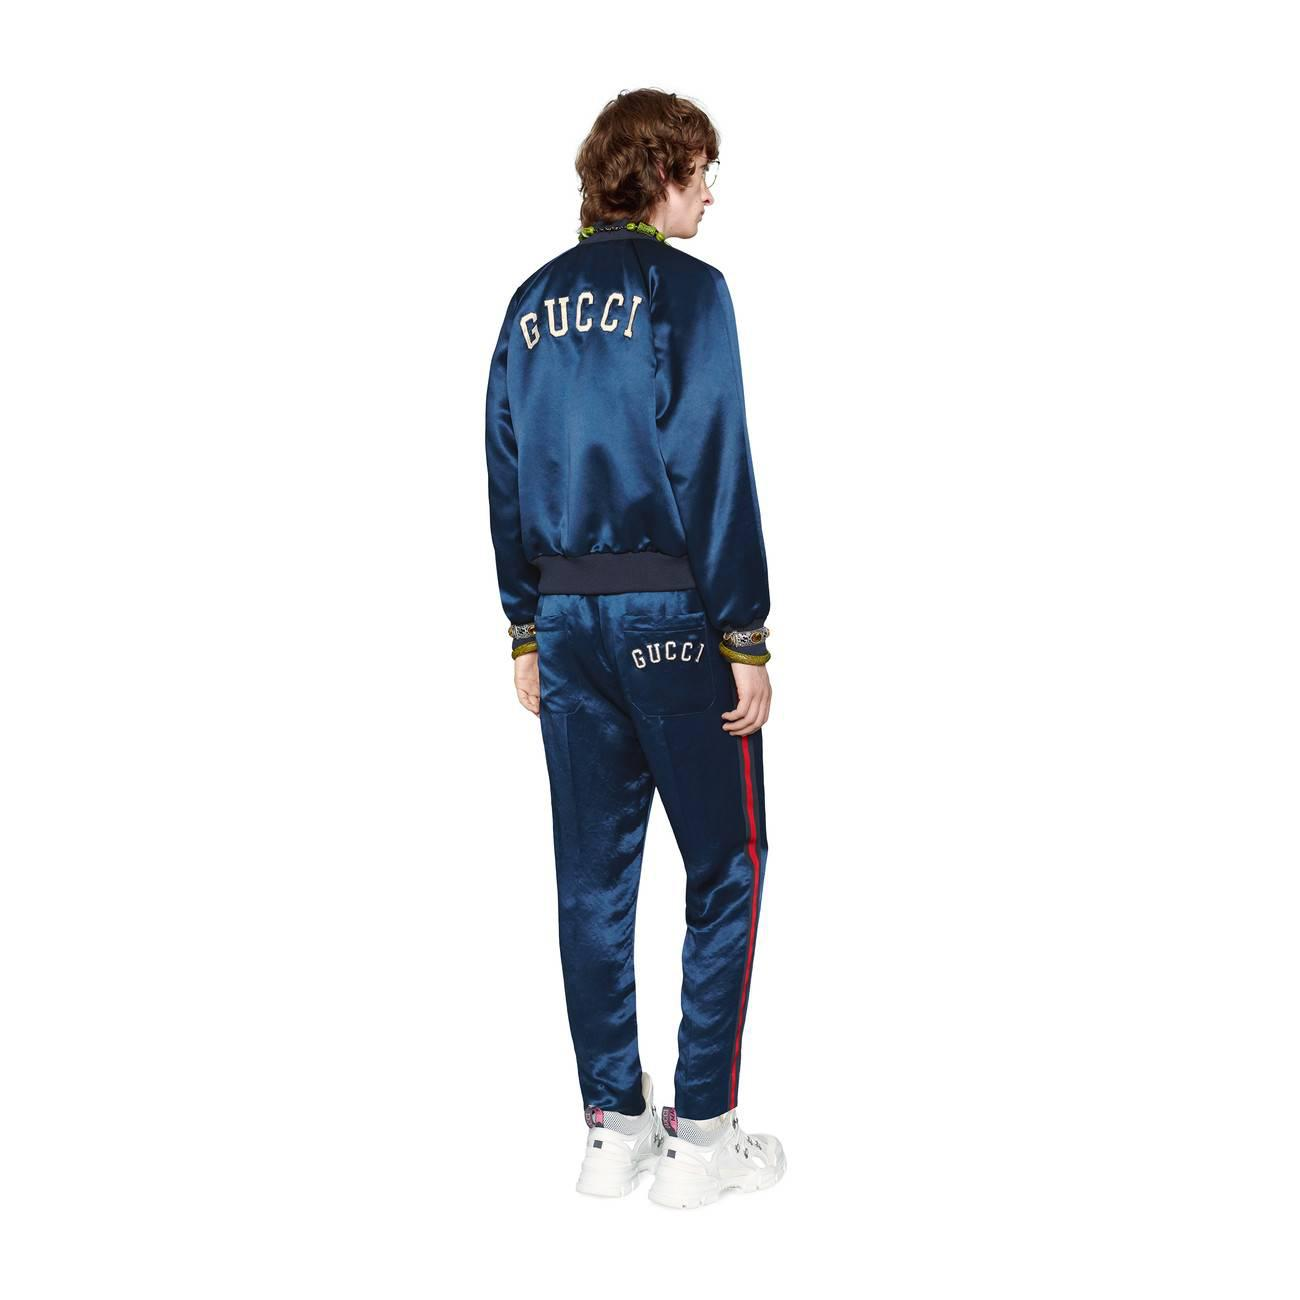 ec48fae140c6e Gucci - Blue Men s Jacket With Ny Yankeestm Patch for Men - Lyst. View  fullscreen